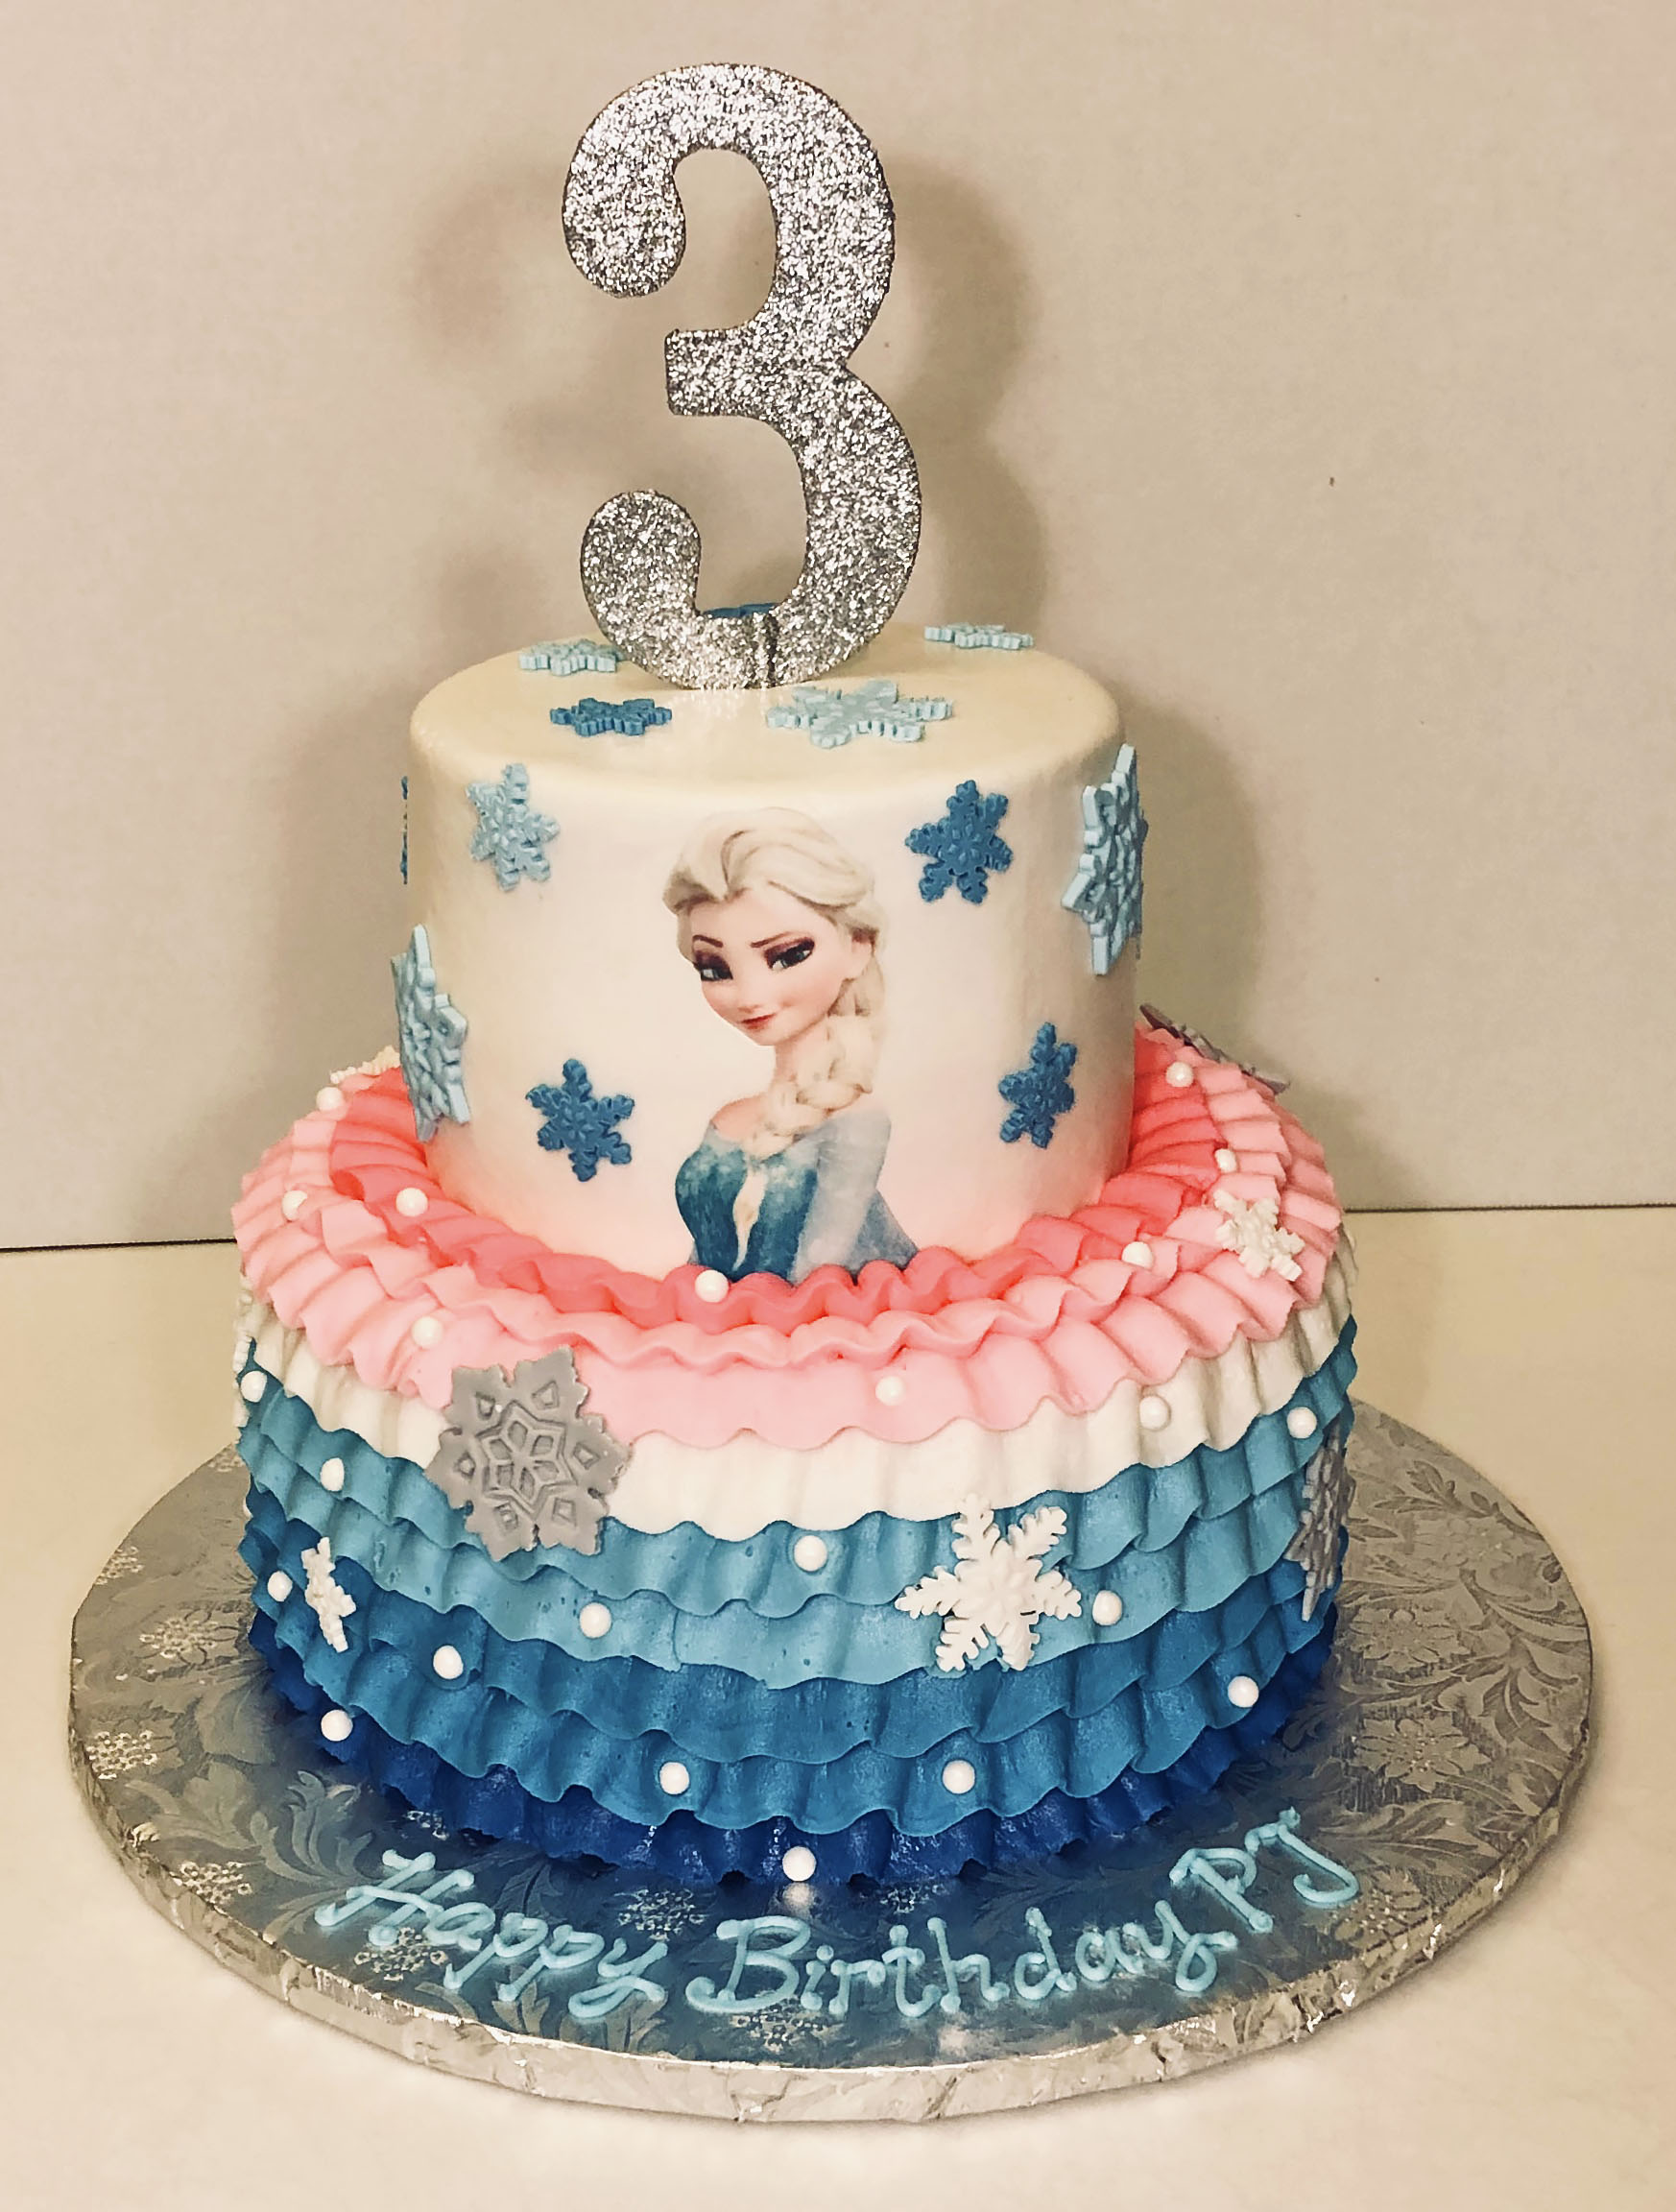 Marvelous Princess Cakes Hands On Design Cakes Funny Birthday Cards Online Overcheapnameinfo